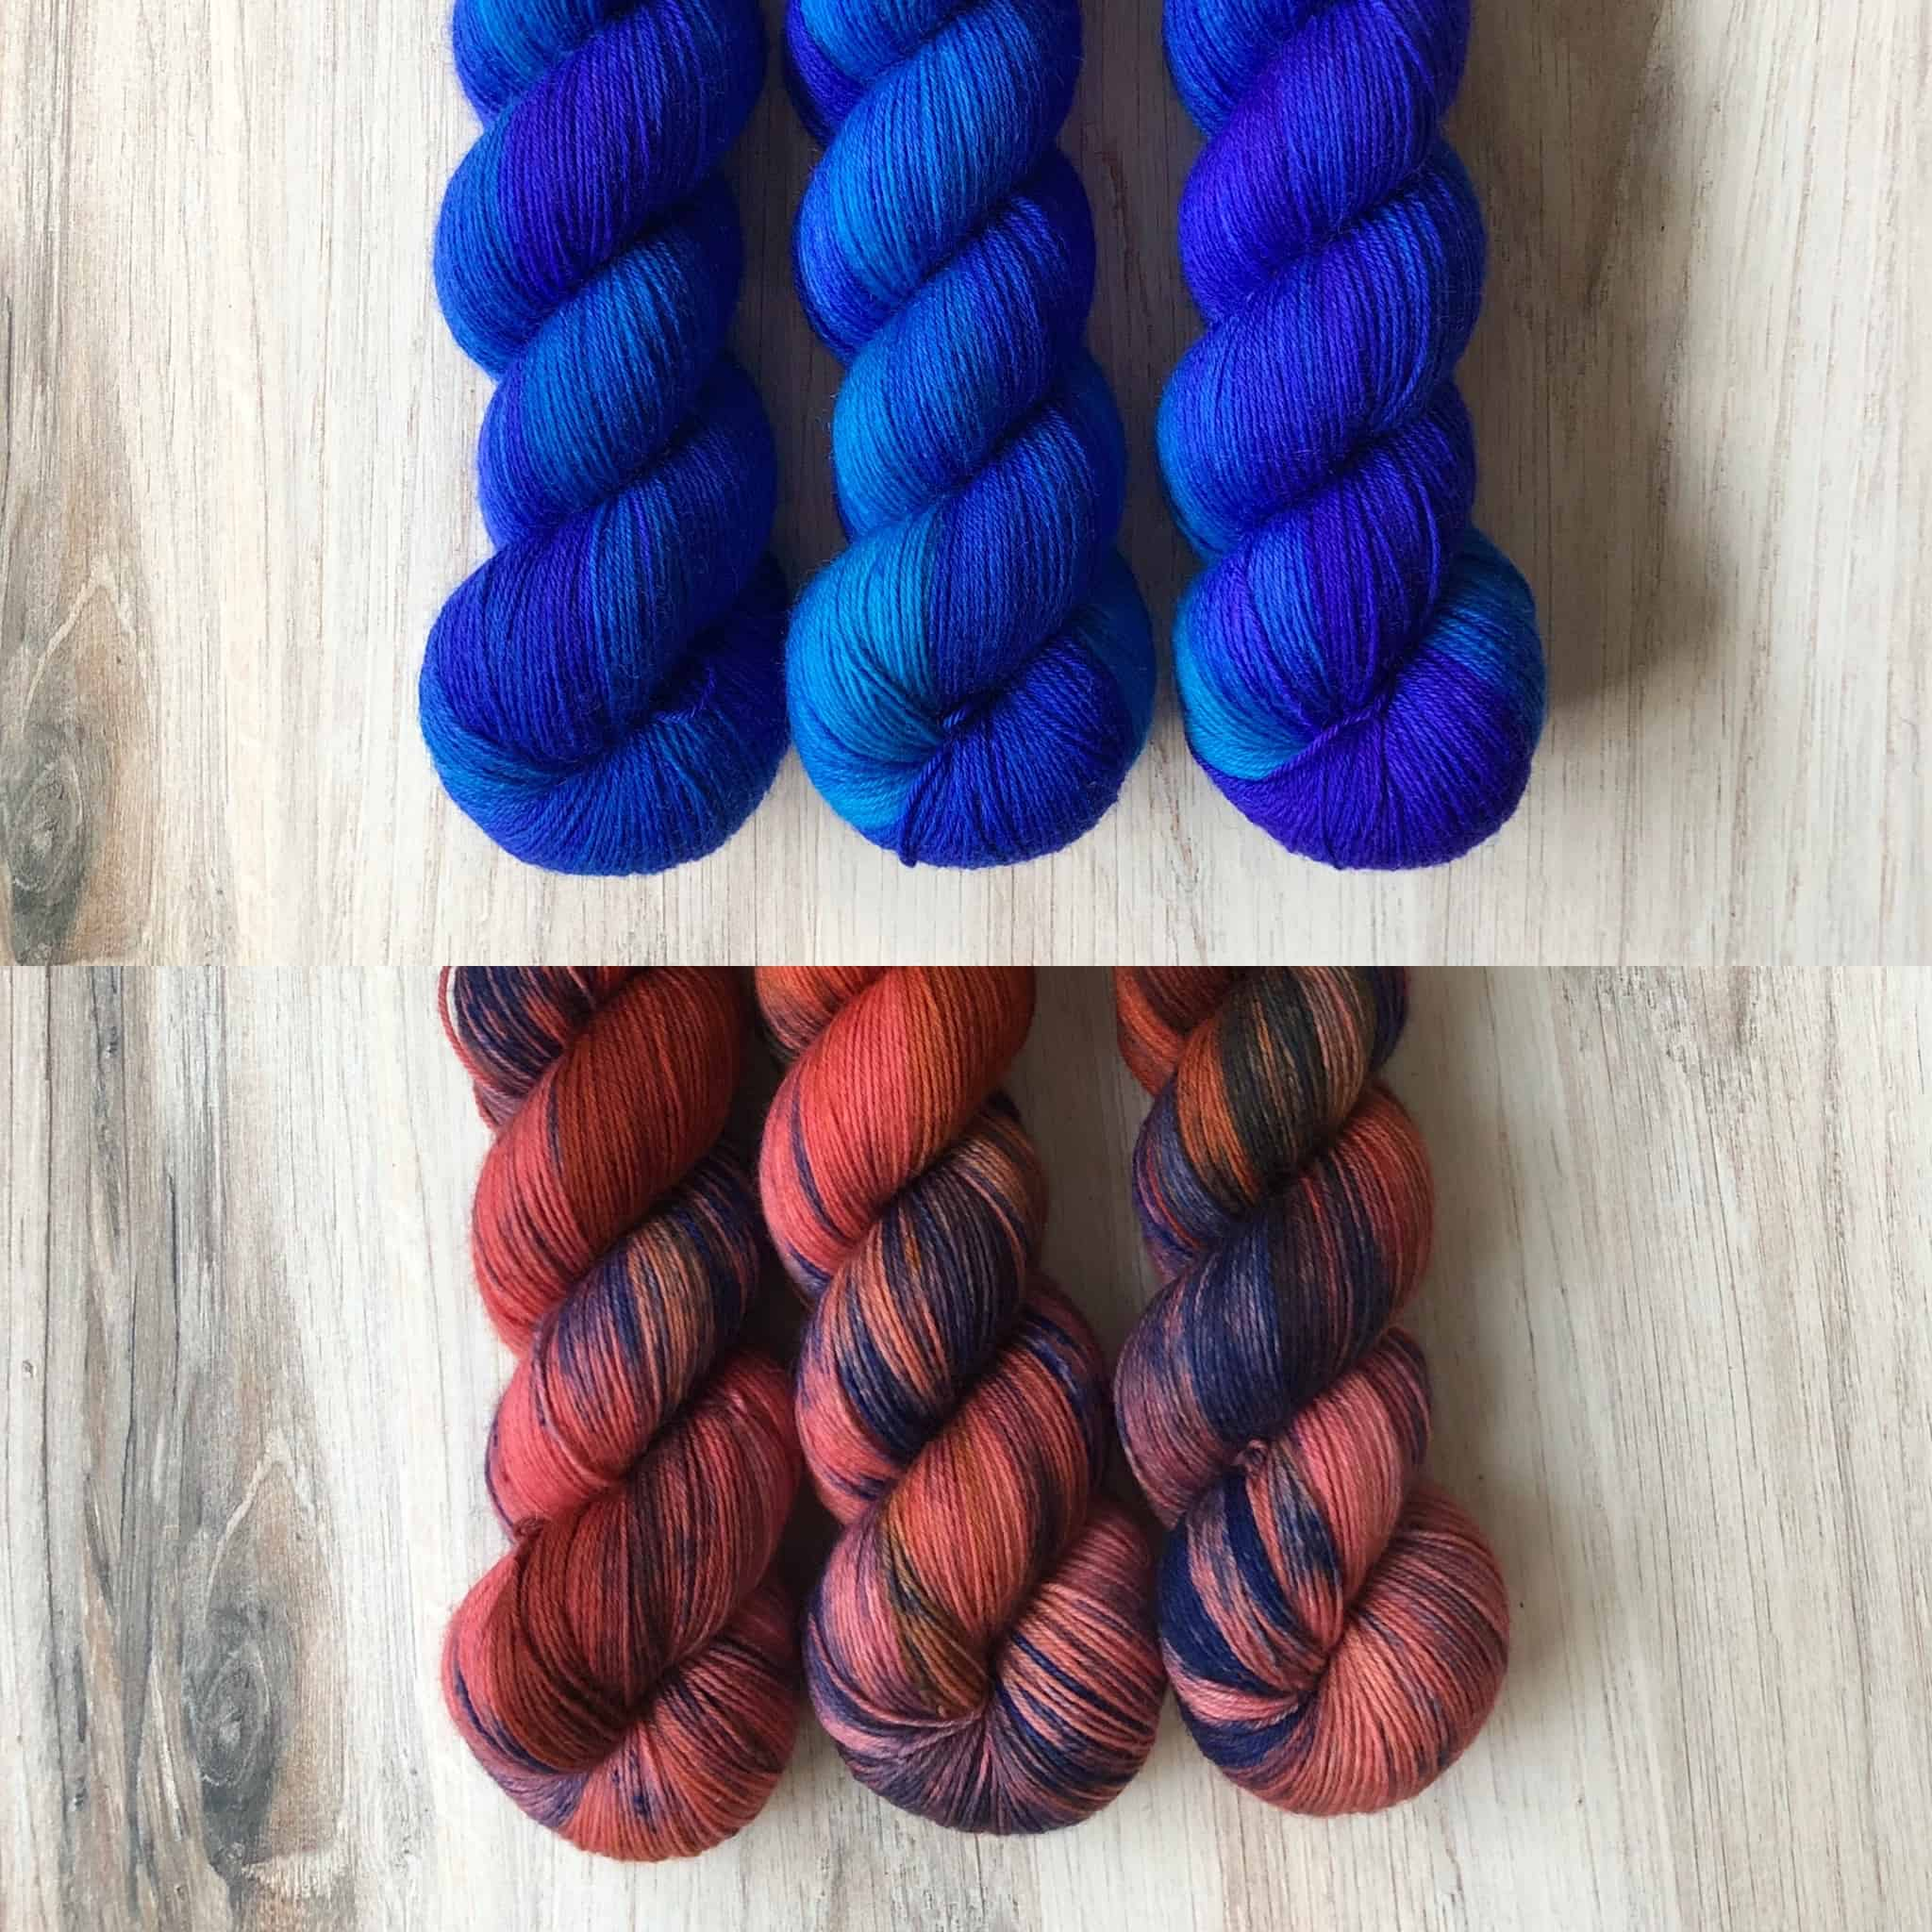 Blue and red yarn.